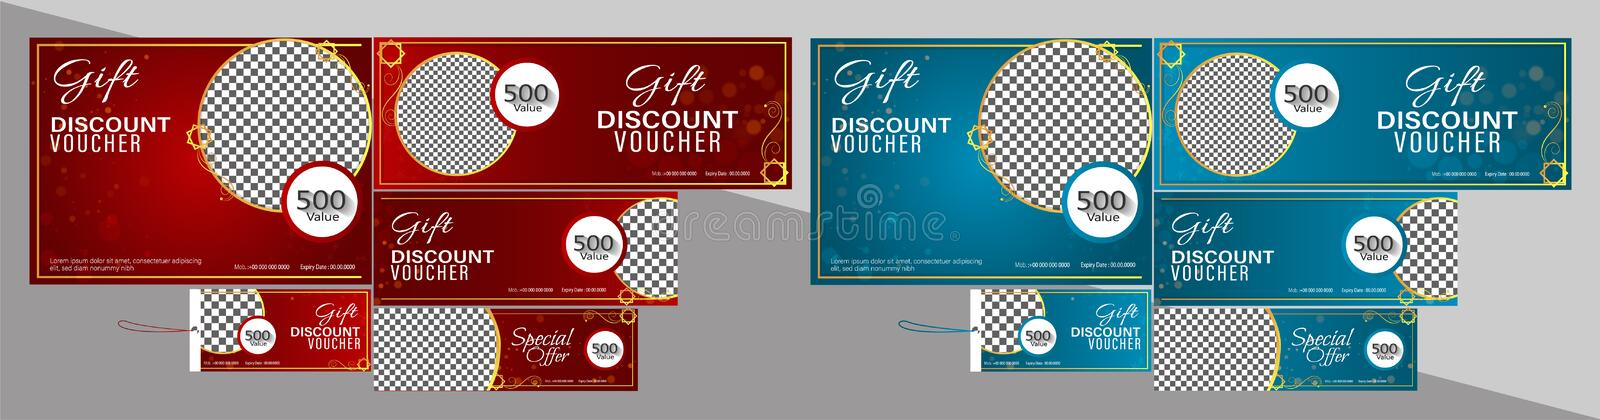 Red and blue color discount voucher or coupon set. vector illustration